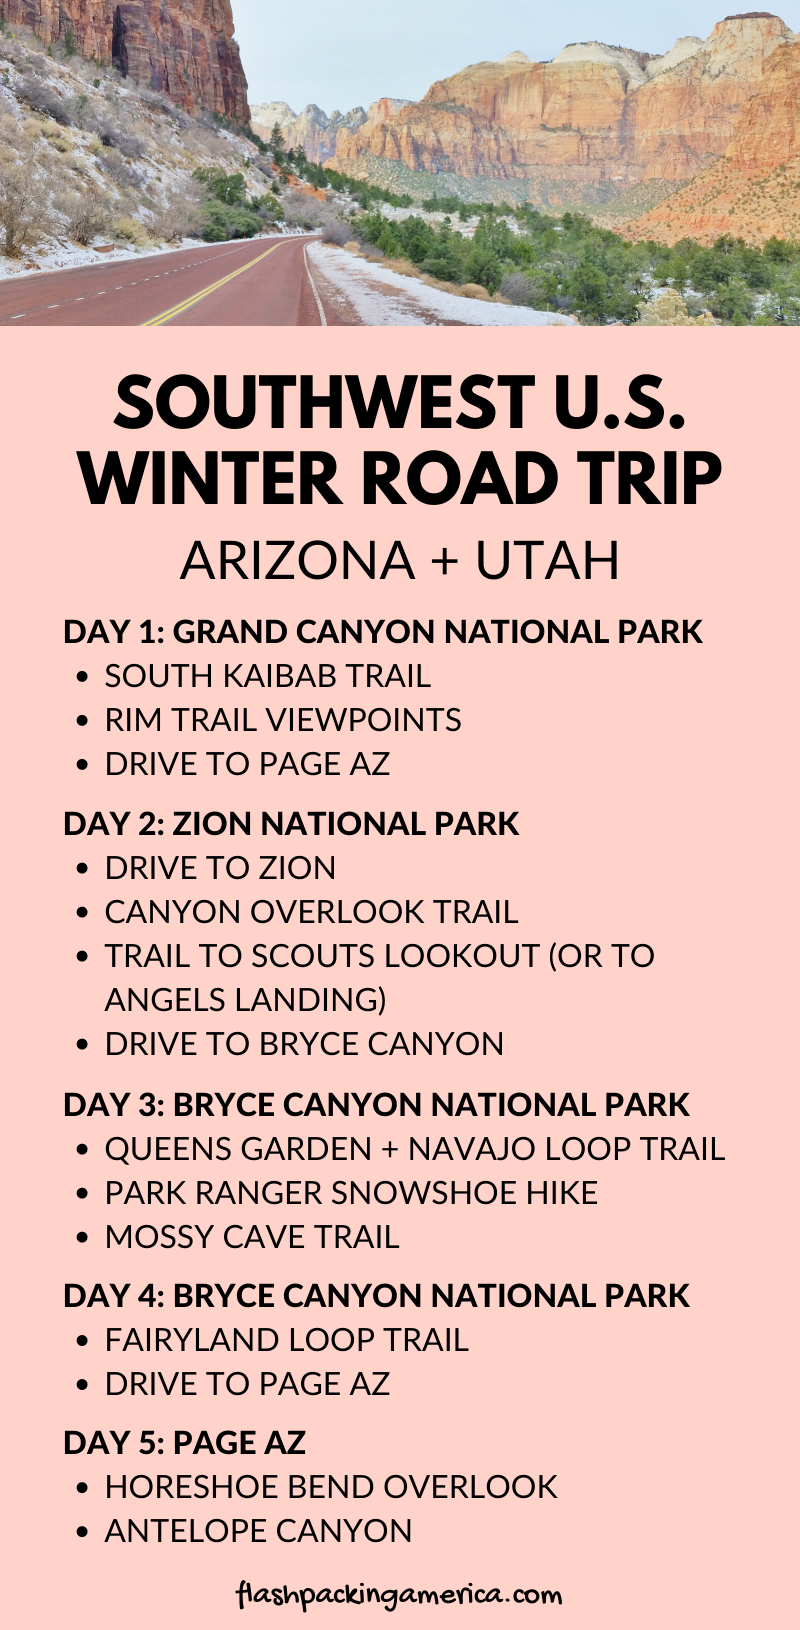 Arizona Utah national parks 5 day winter road trip itinerary - Southwest US vacation ideas